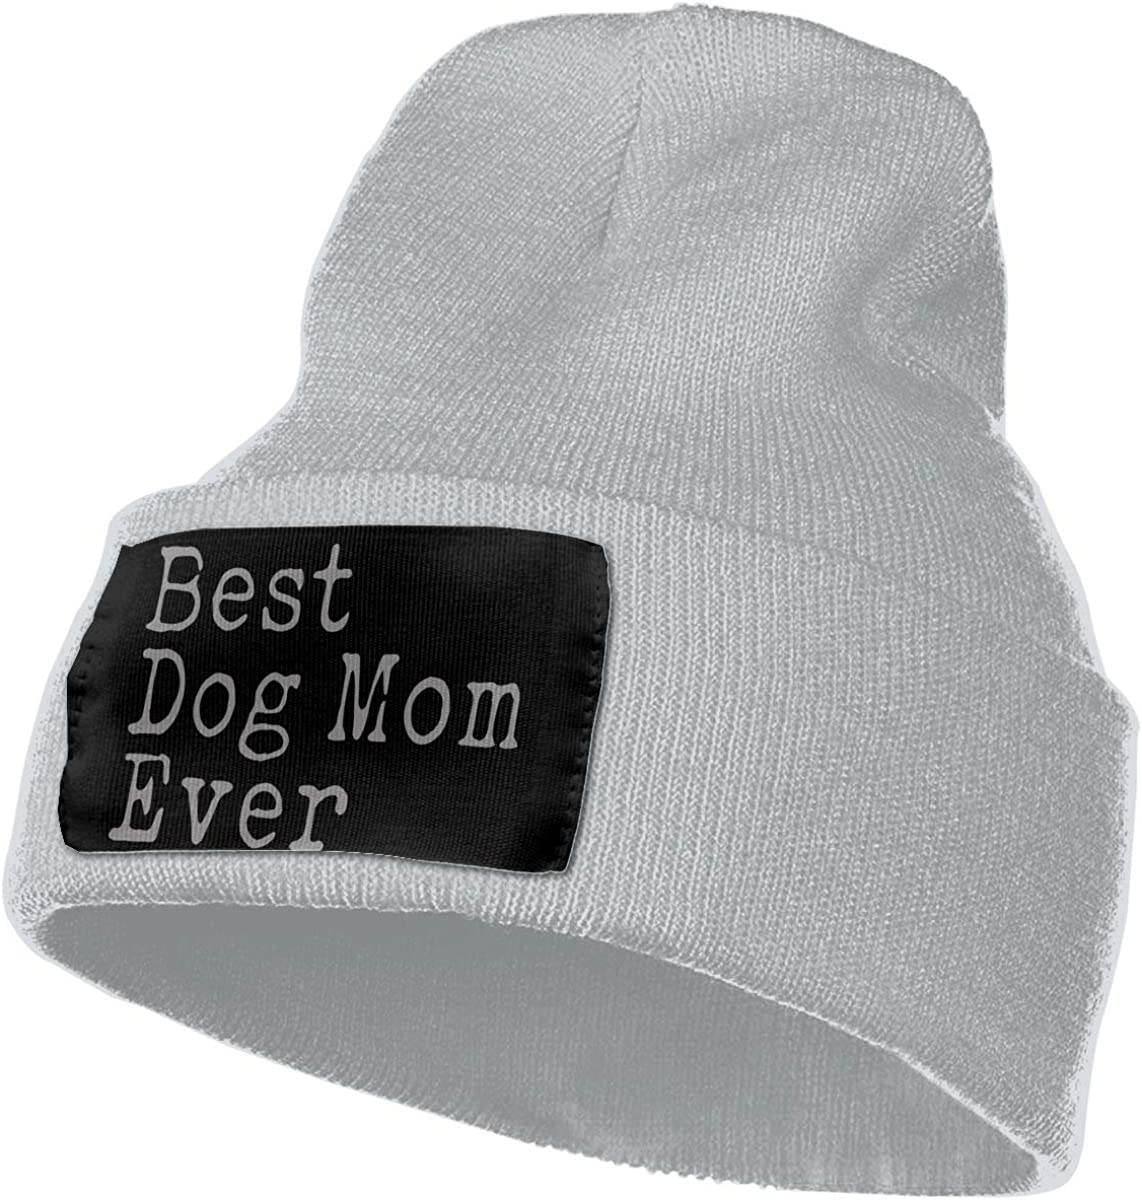 WHOO93@Y Mens Womens 100/% Acrylic Knit Hat Cap Best Dog Mom Ever Cute Ski Cap